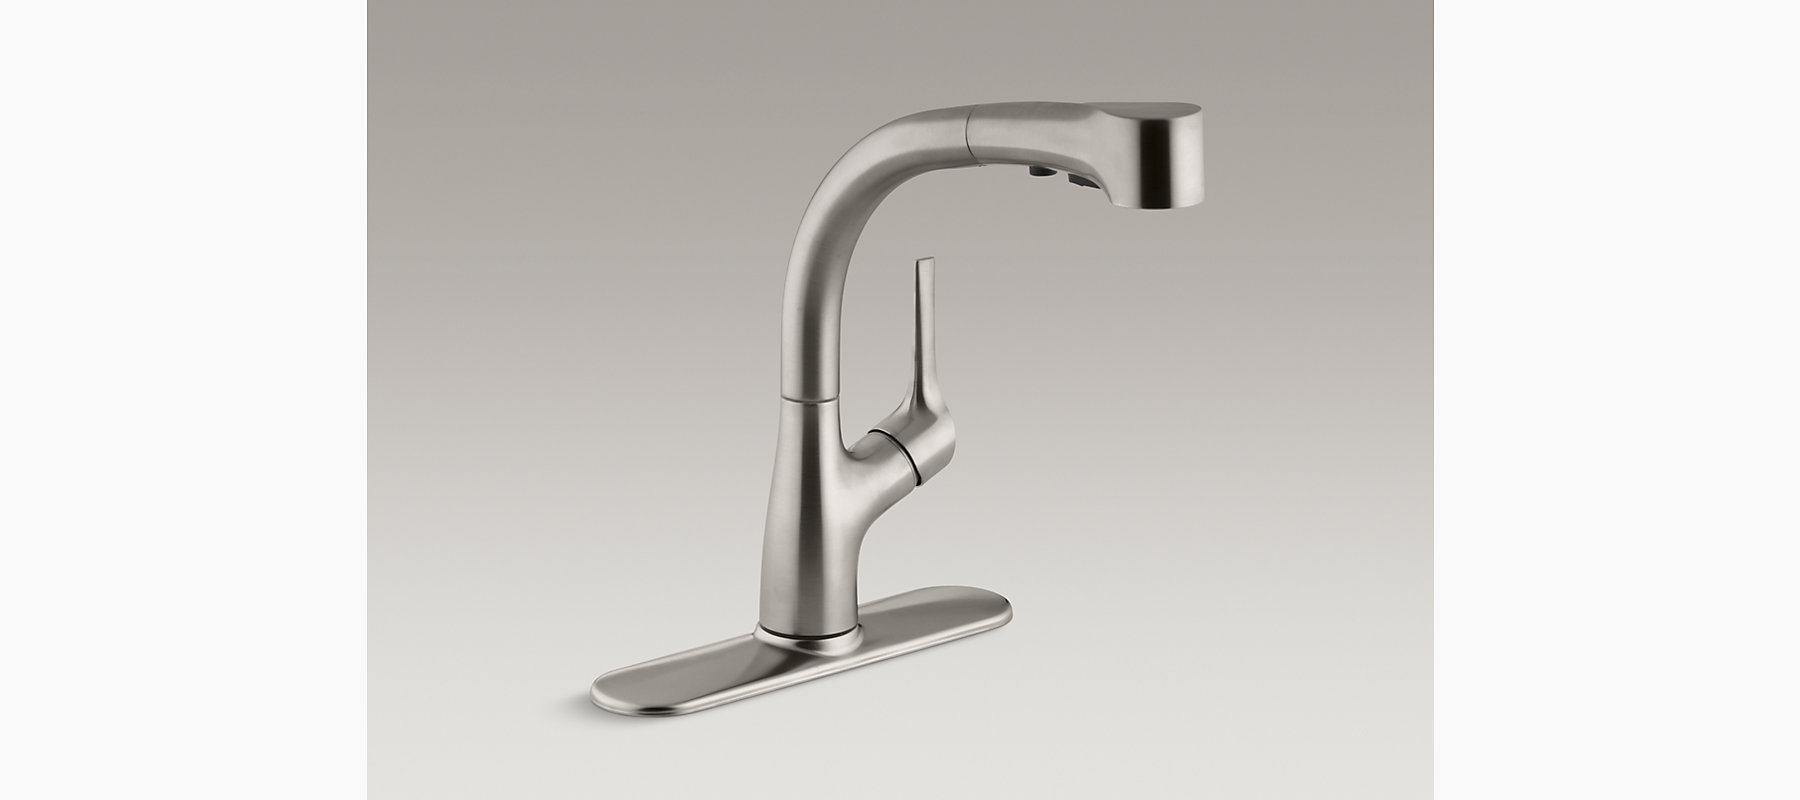 K R13963 Elate Kitchen Sink Faucet With Pull Out Sprayhead KOHLER